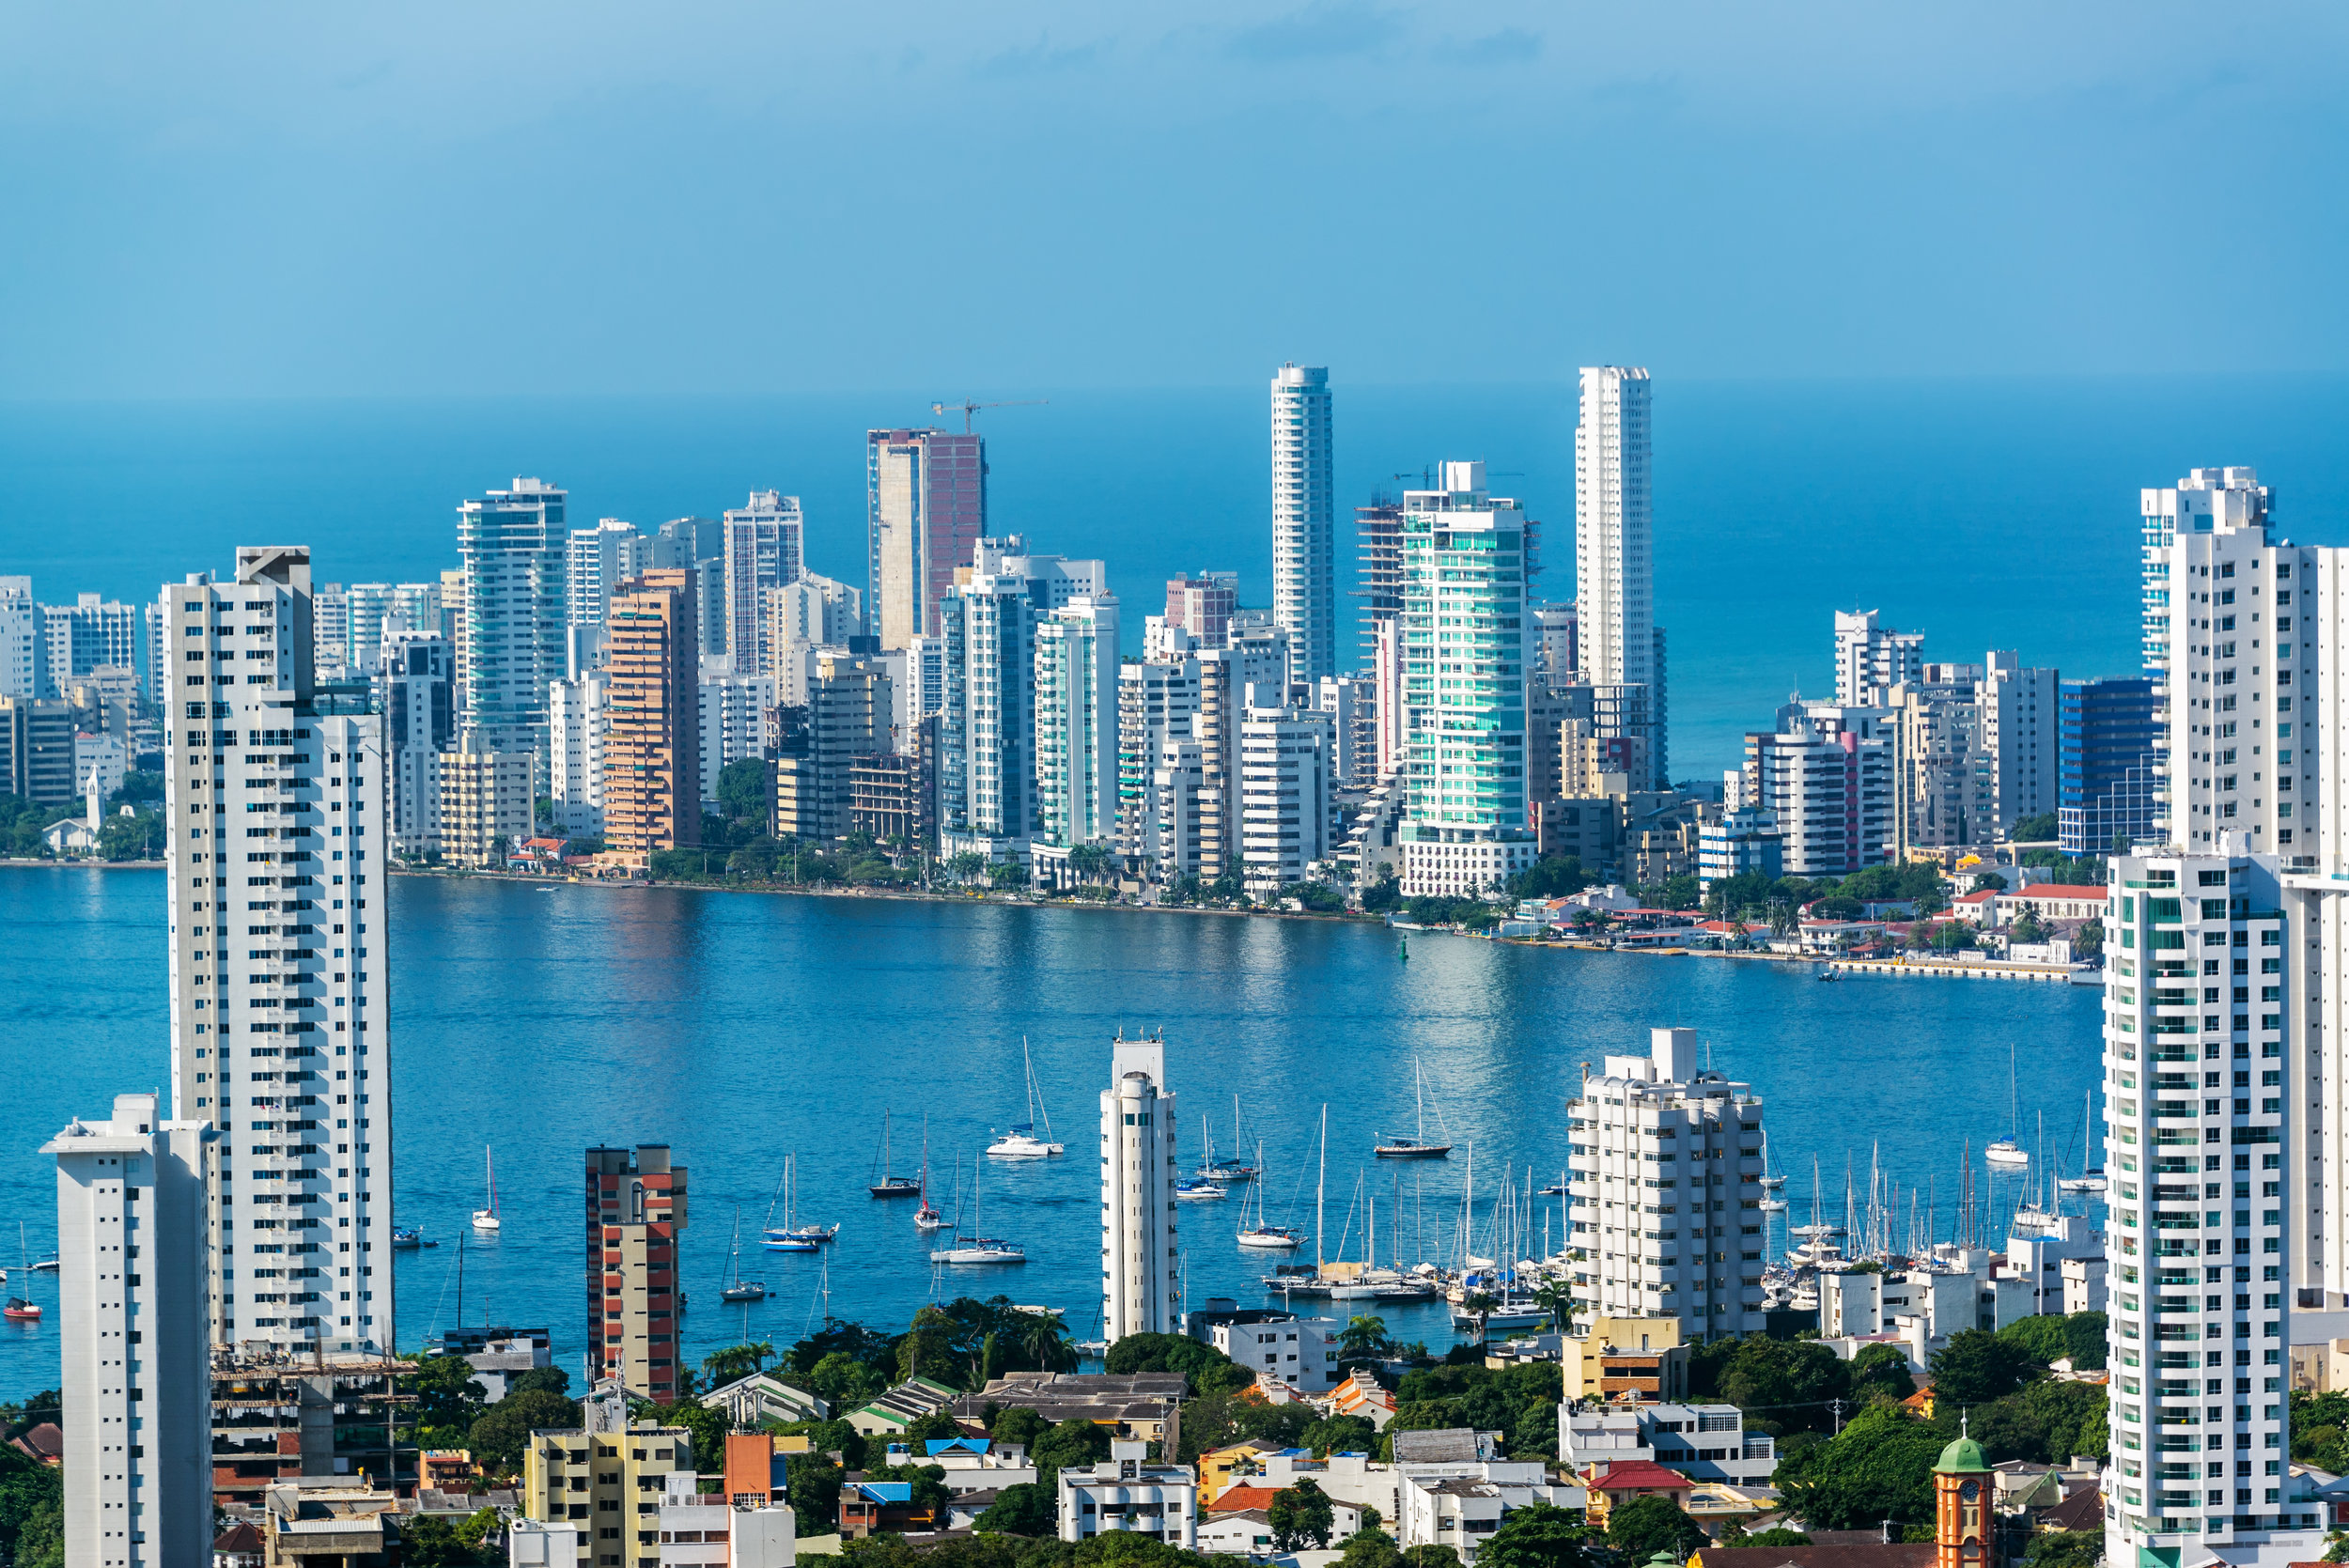 colombia_bigstock-Cartagena-Skyscapers-55221812.jpg